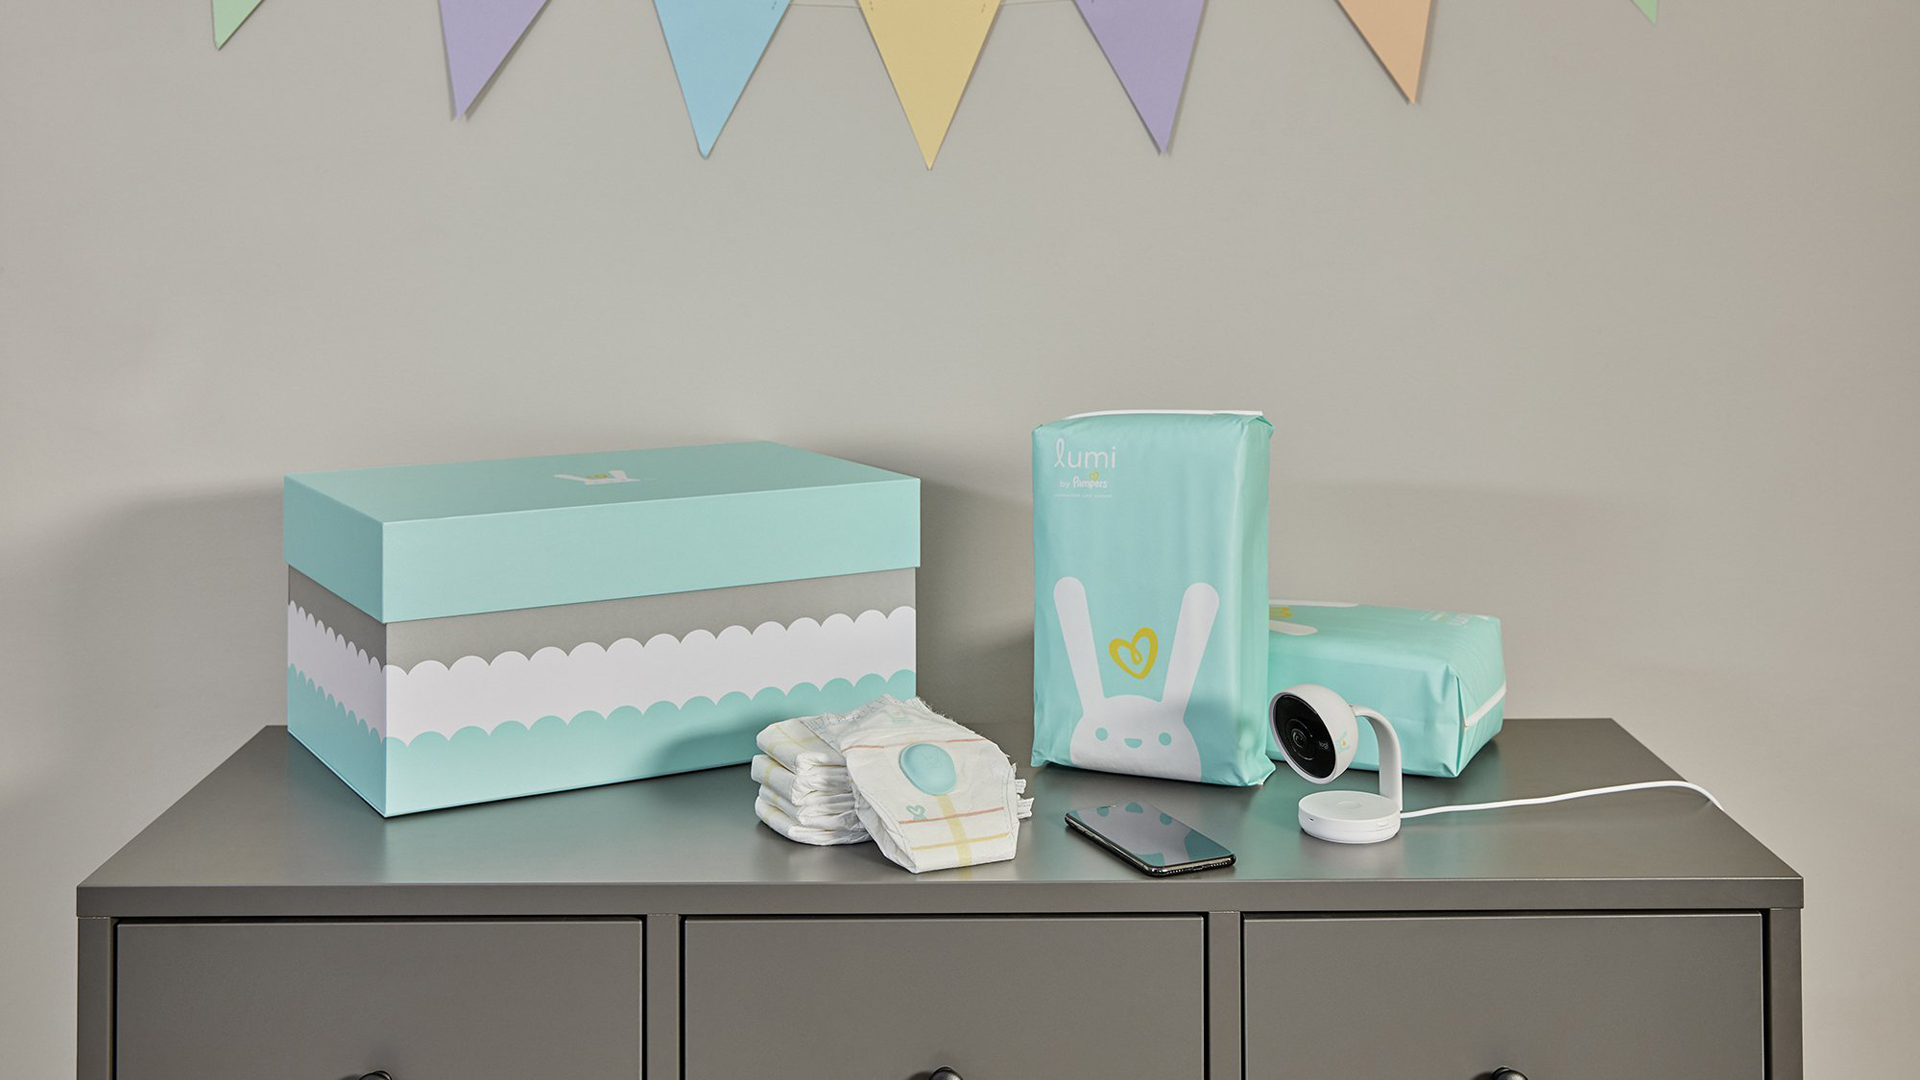 The Lumi by Pampers line is seen in an image from Pampers.